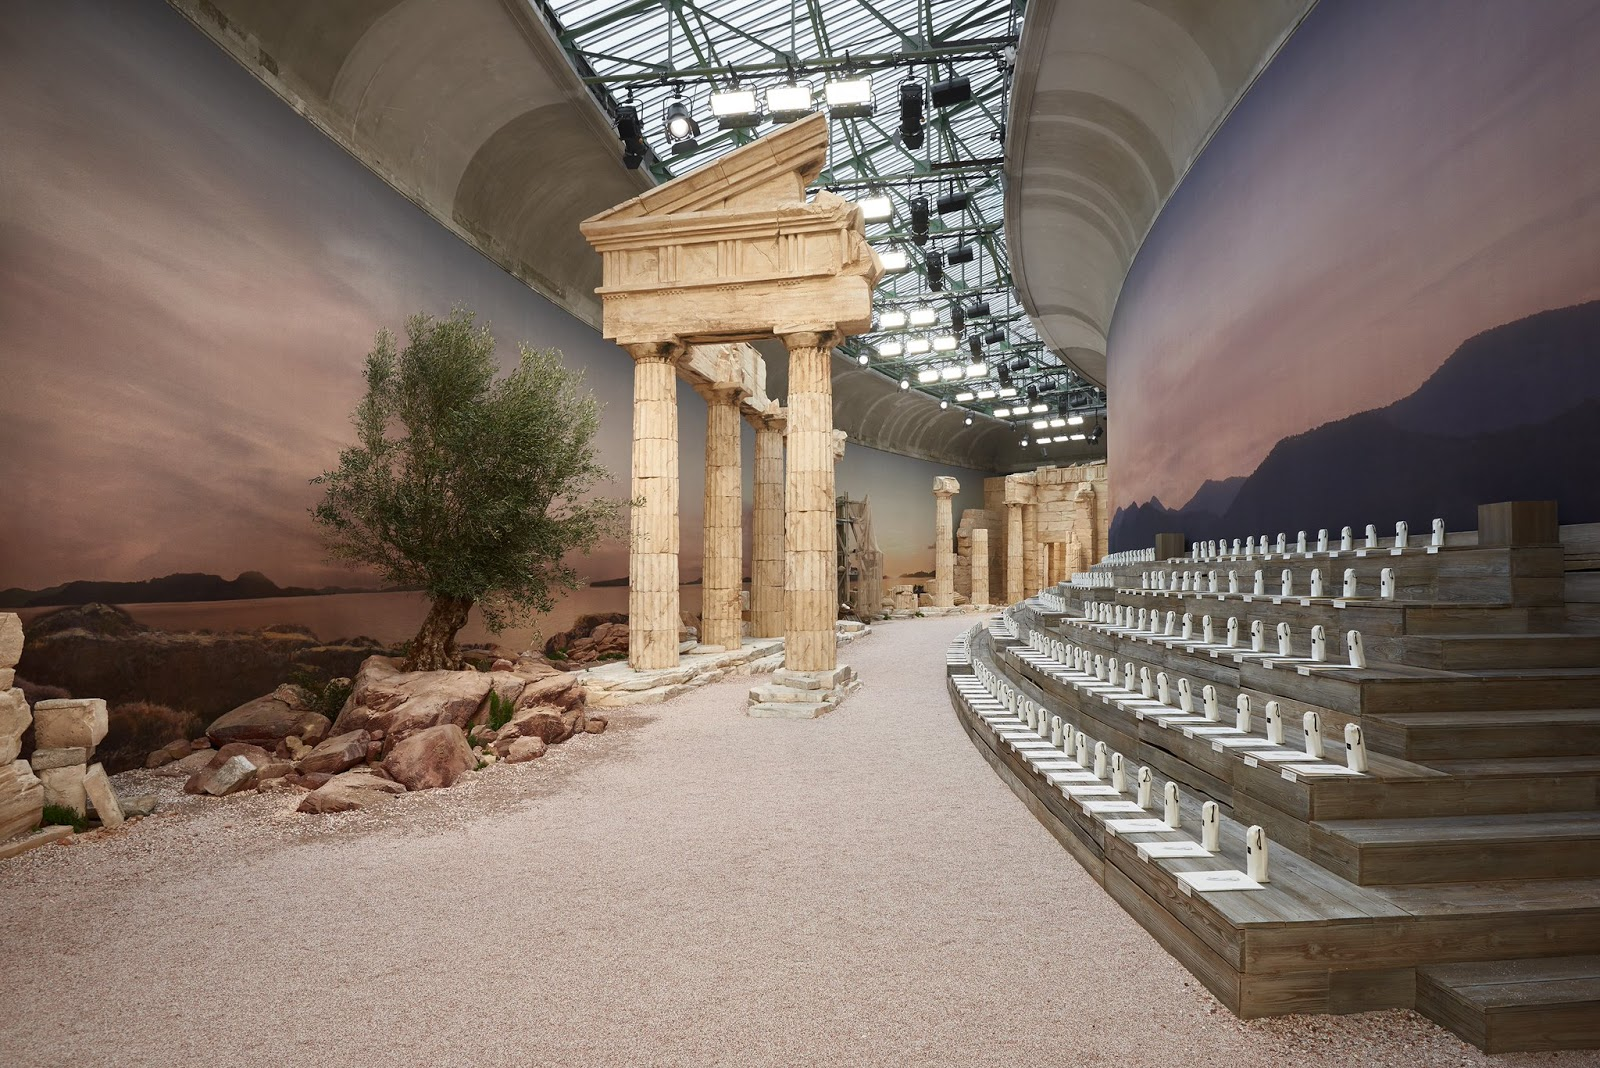 The set of the Chanel Cruise 2018